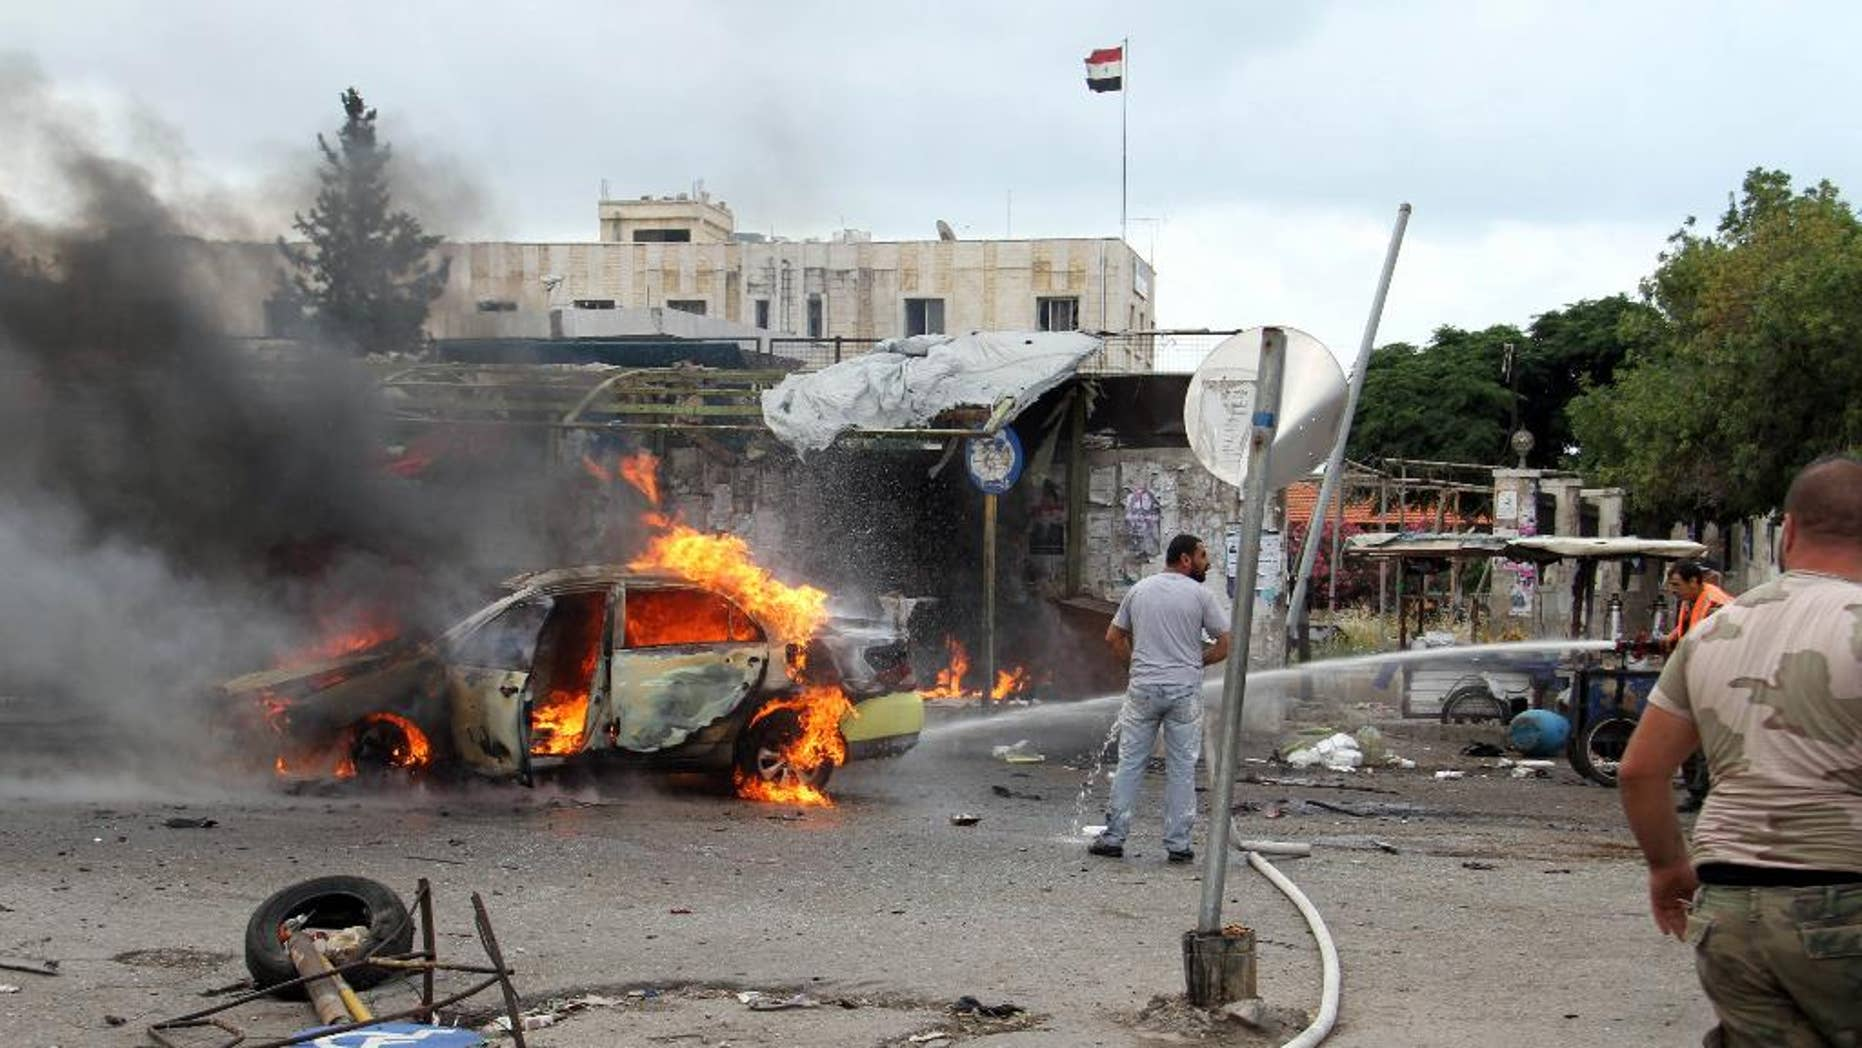 May 23, 2016: In this photo released by the Syrian official news agency SANA, a firefighter, right, extinguishes a burning car at the scene where suicide bombers blew themselves up in the coastal town of Tartus, Syria